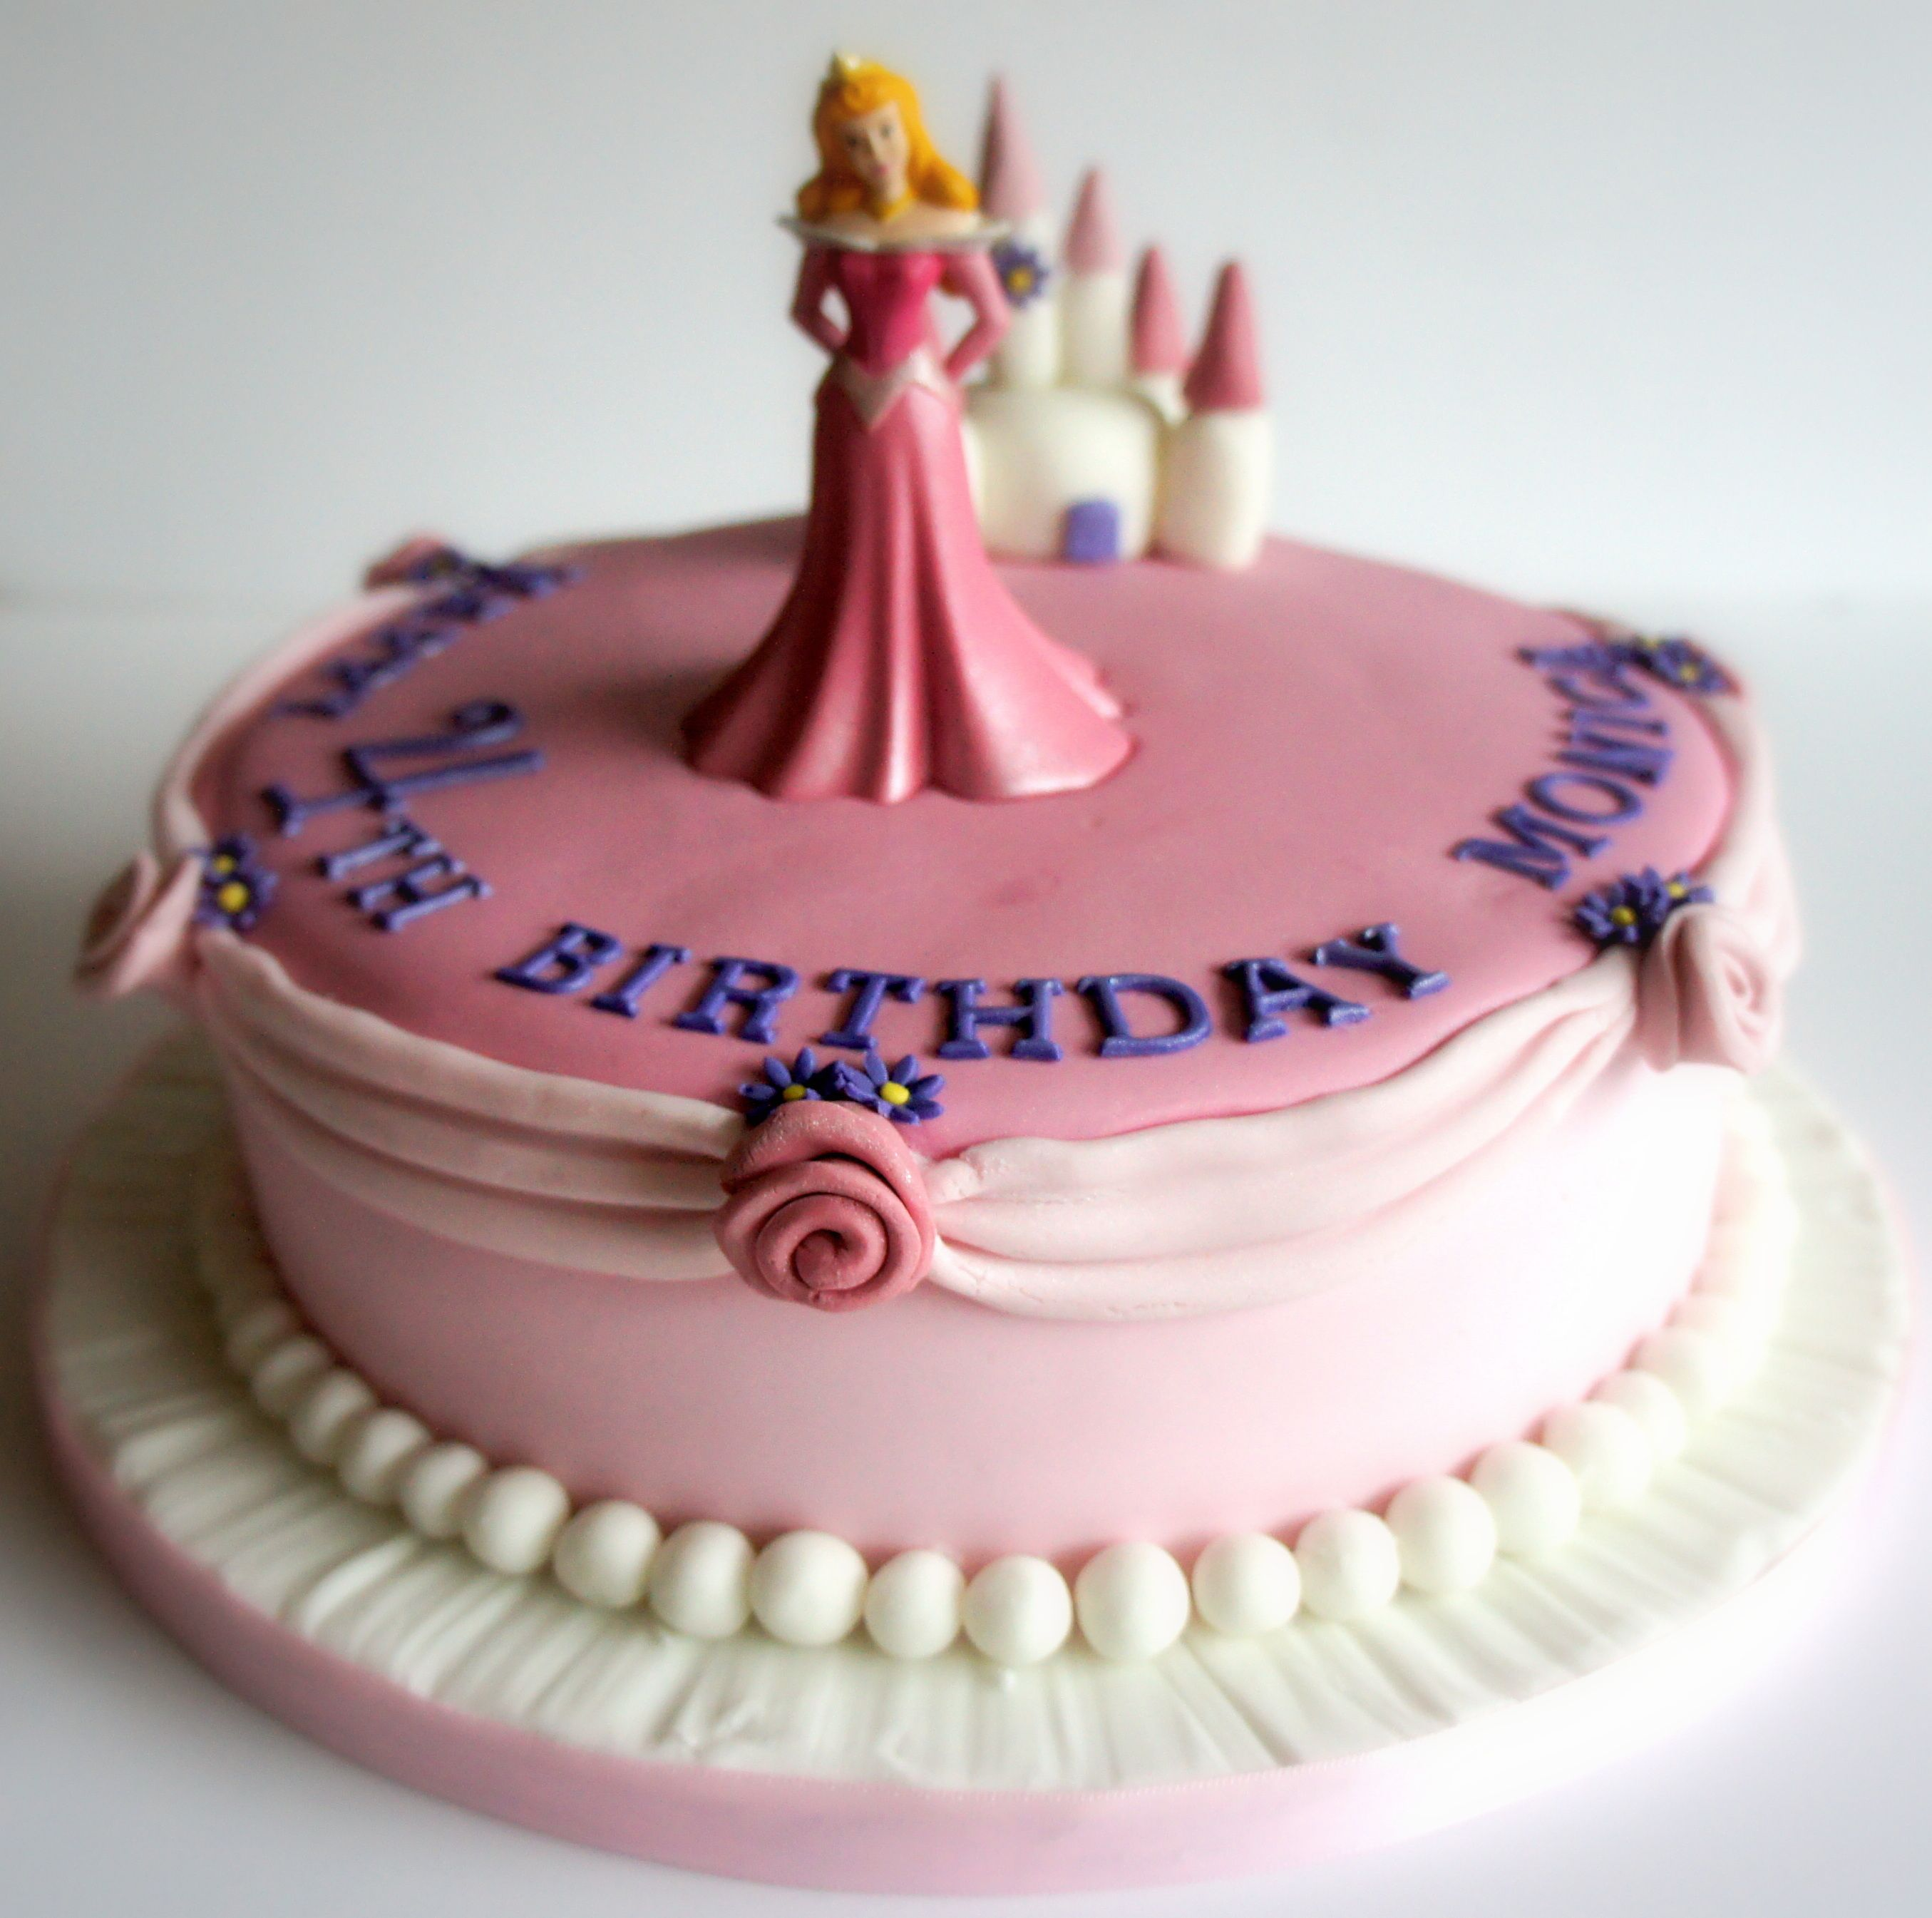 Sleepingbeauty Cake Www Byjojo Co Uk With Images Sleeping